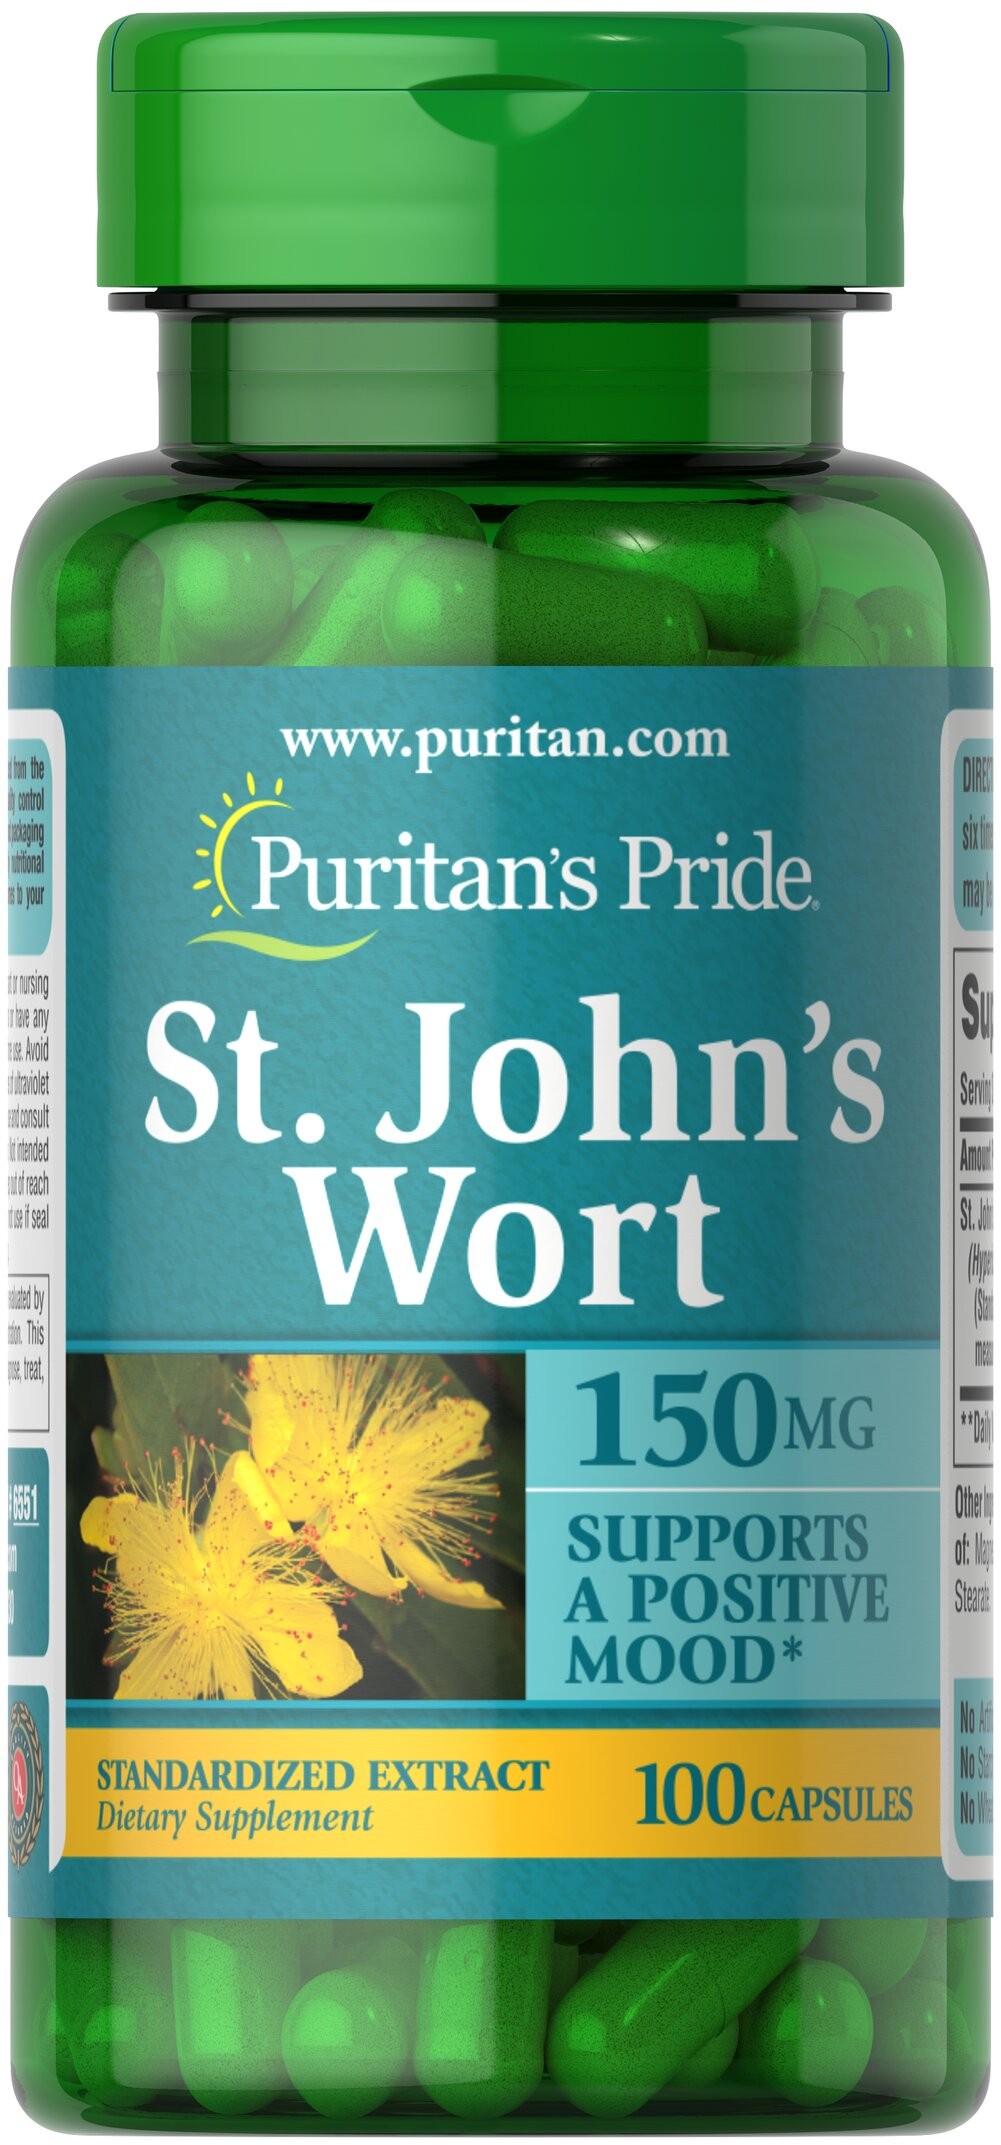 St. John's Wort Standardized Extract 150 mg Thumbnail Alternate Bottle View